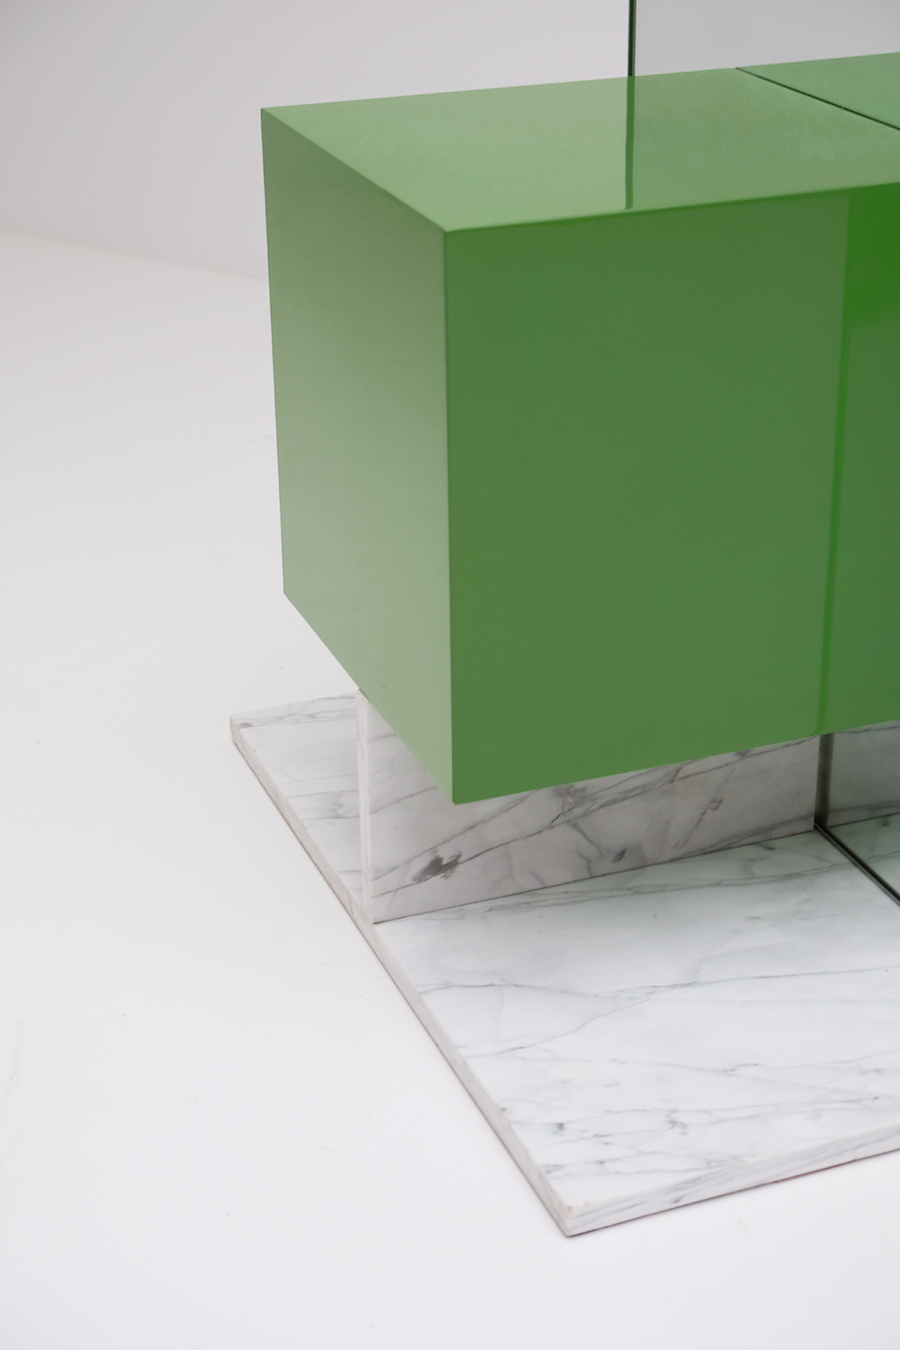 Pieter De Bruyne Green Mirror Cabinet With Marble Base 1974image 4